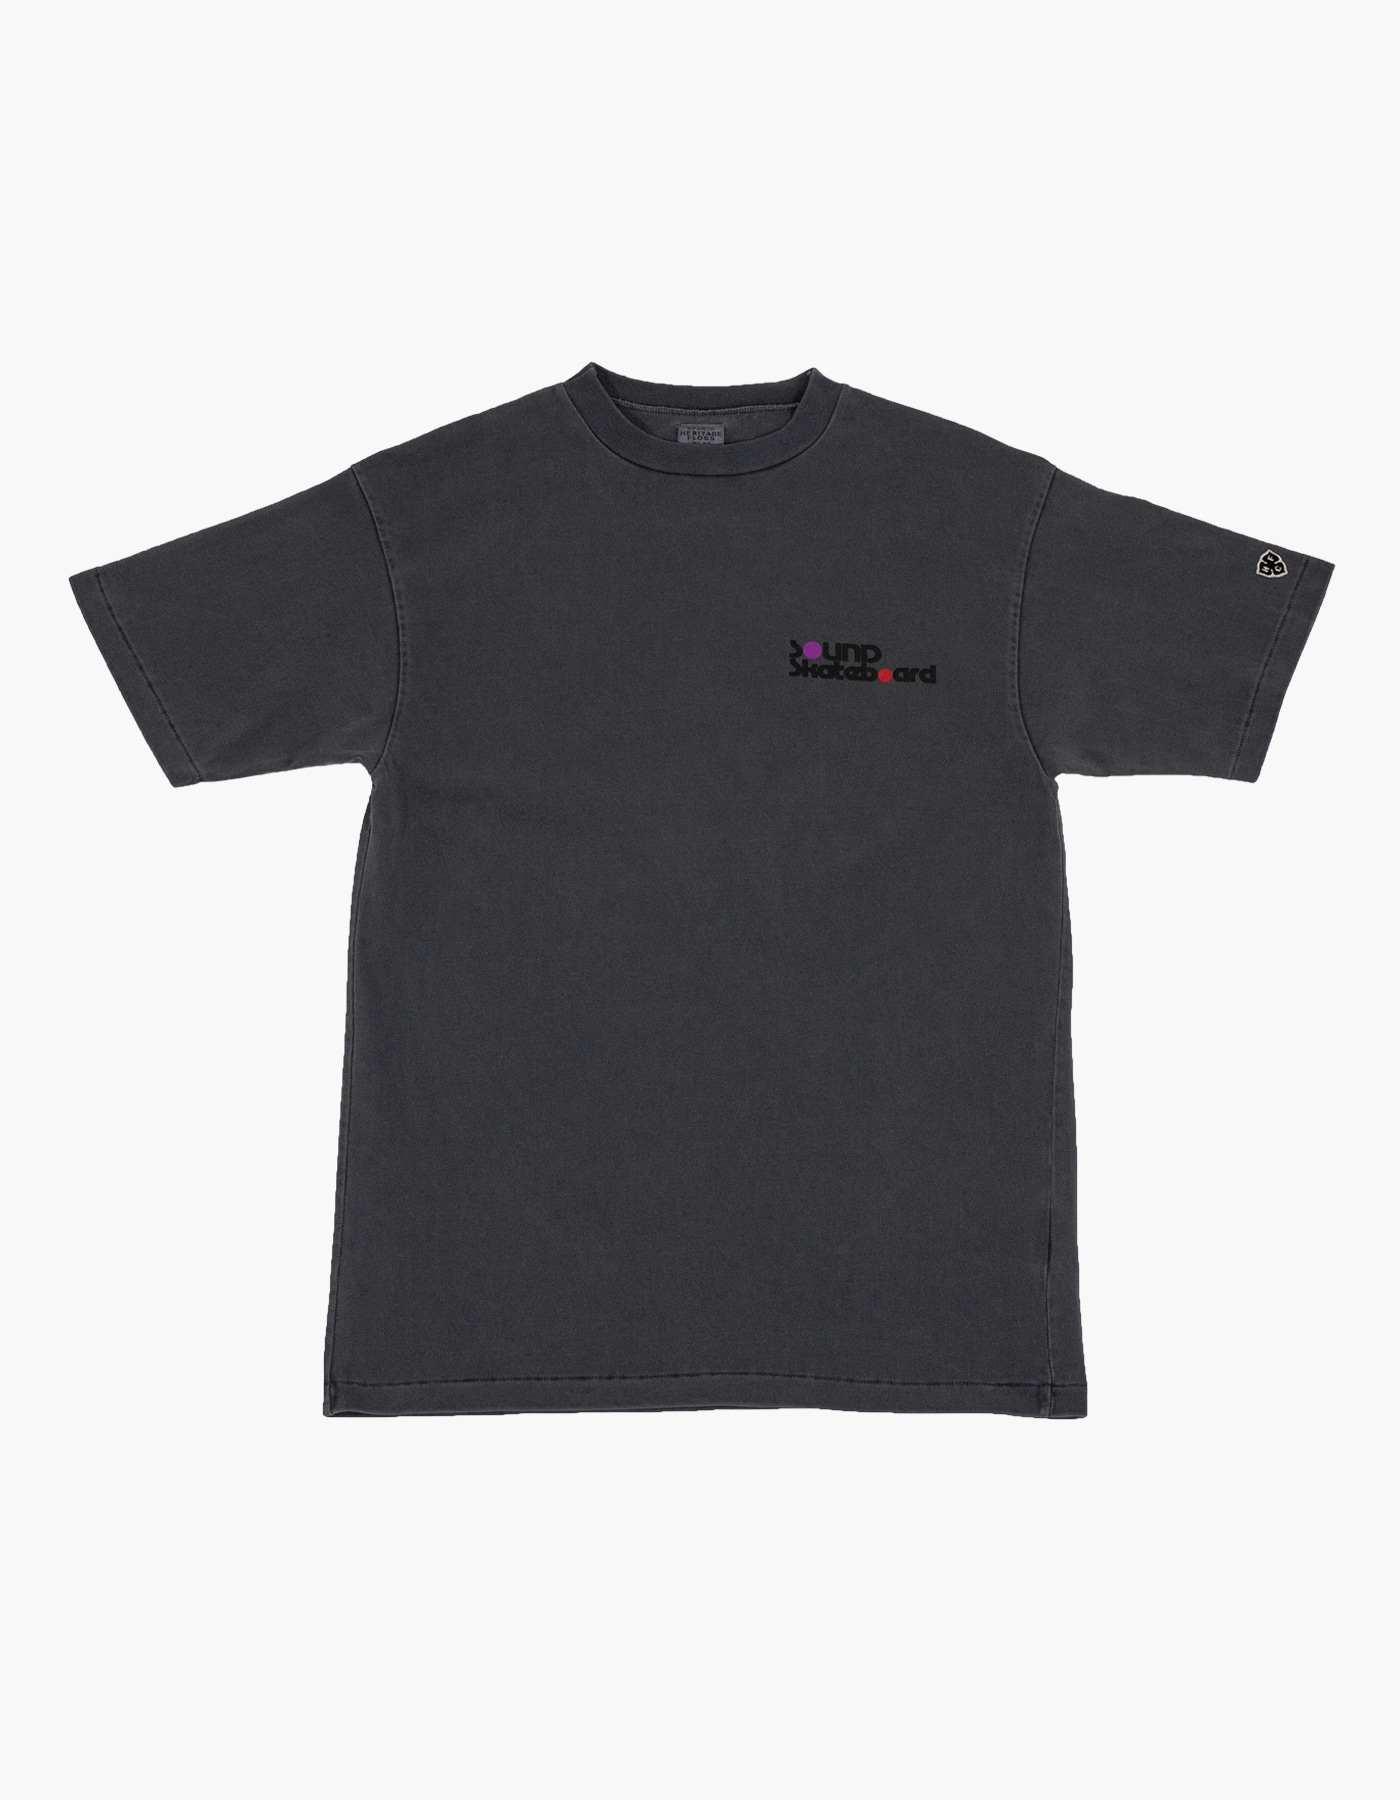 SOUNDSKATE 10S COMPACT YARN T-SHIRTS / CHARCOAL